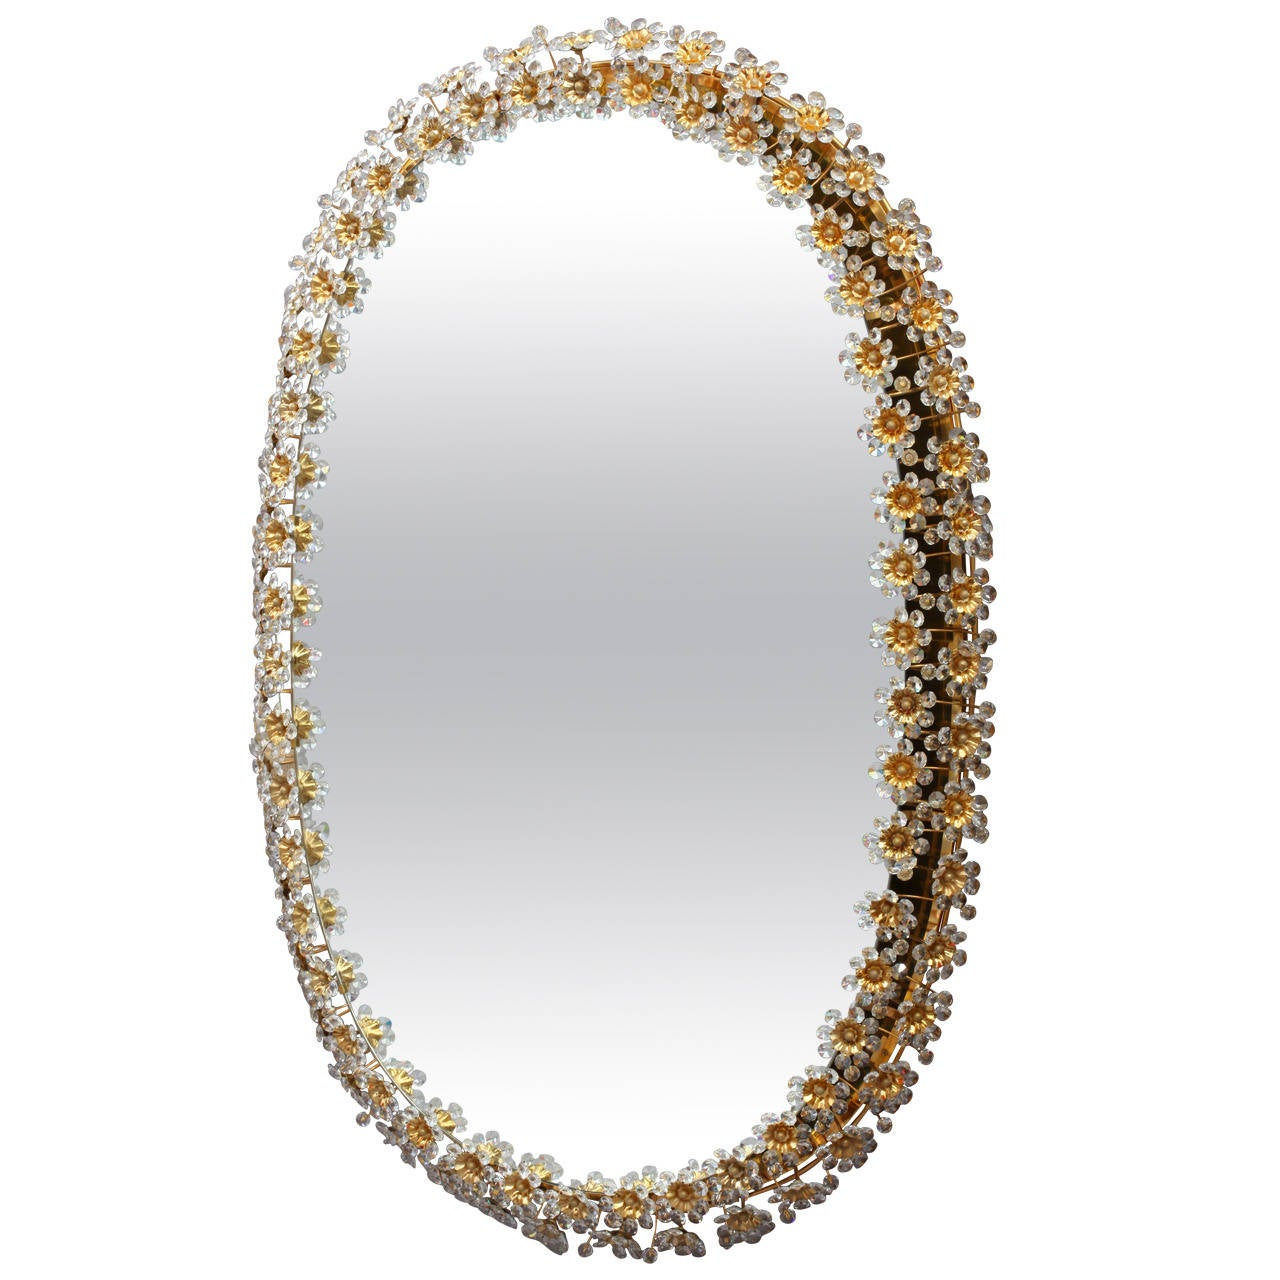 Amazing illuminated crystal glass mirror by palwa with gilded oval amazing illuminated crystal glass mirror by palwa with gilded oval frame 1 amipublicfo Image collections